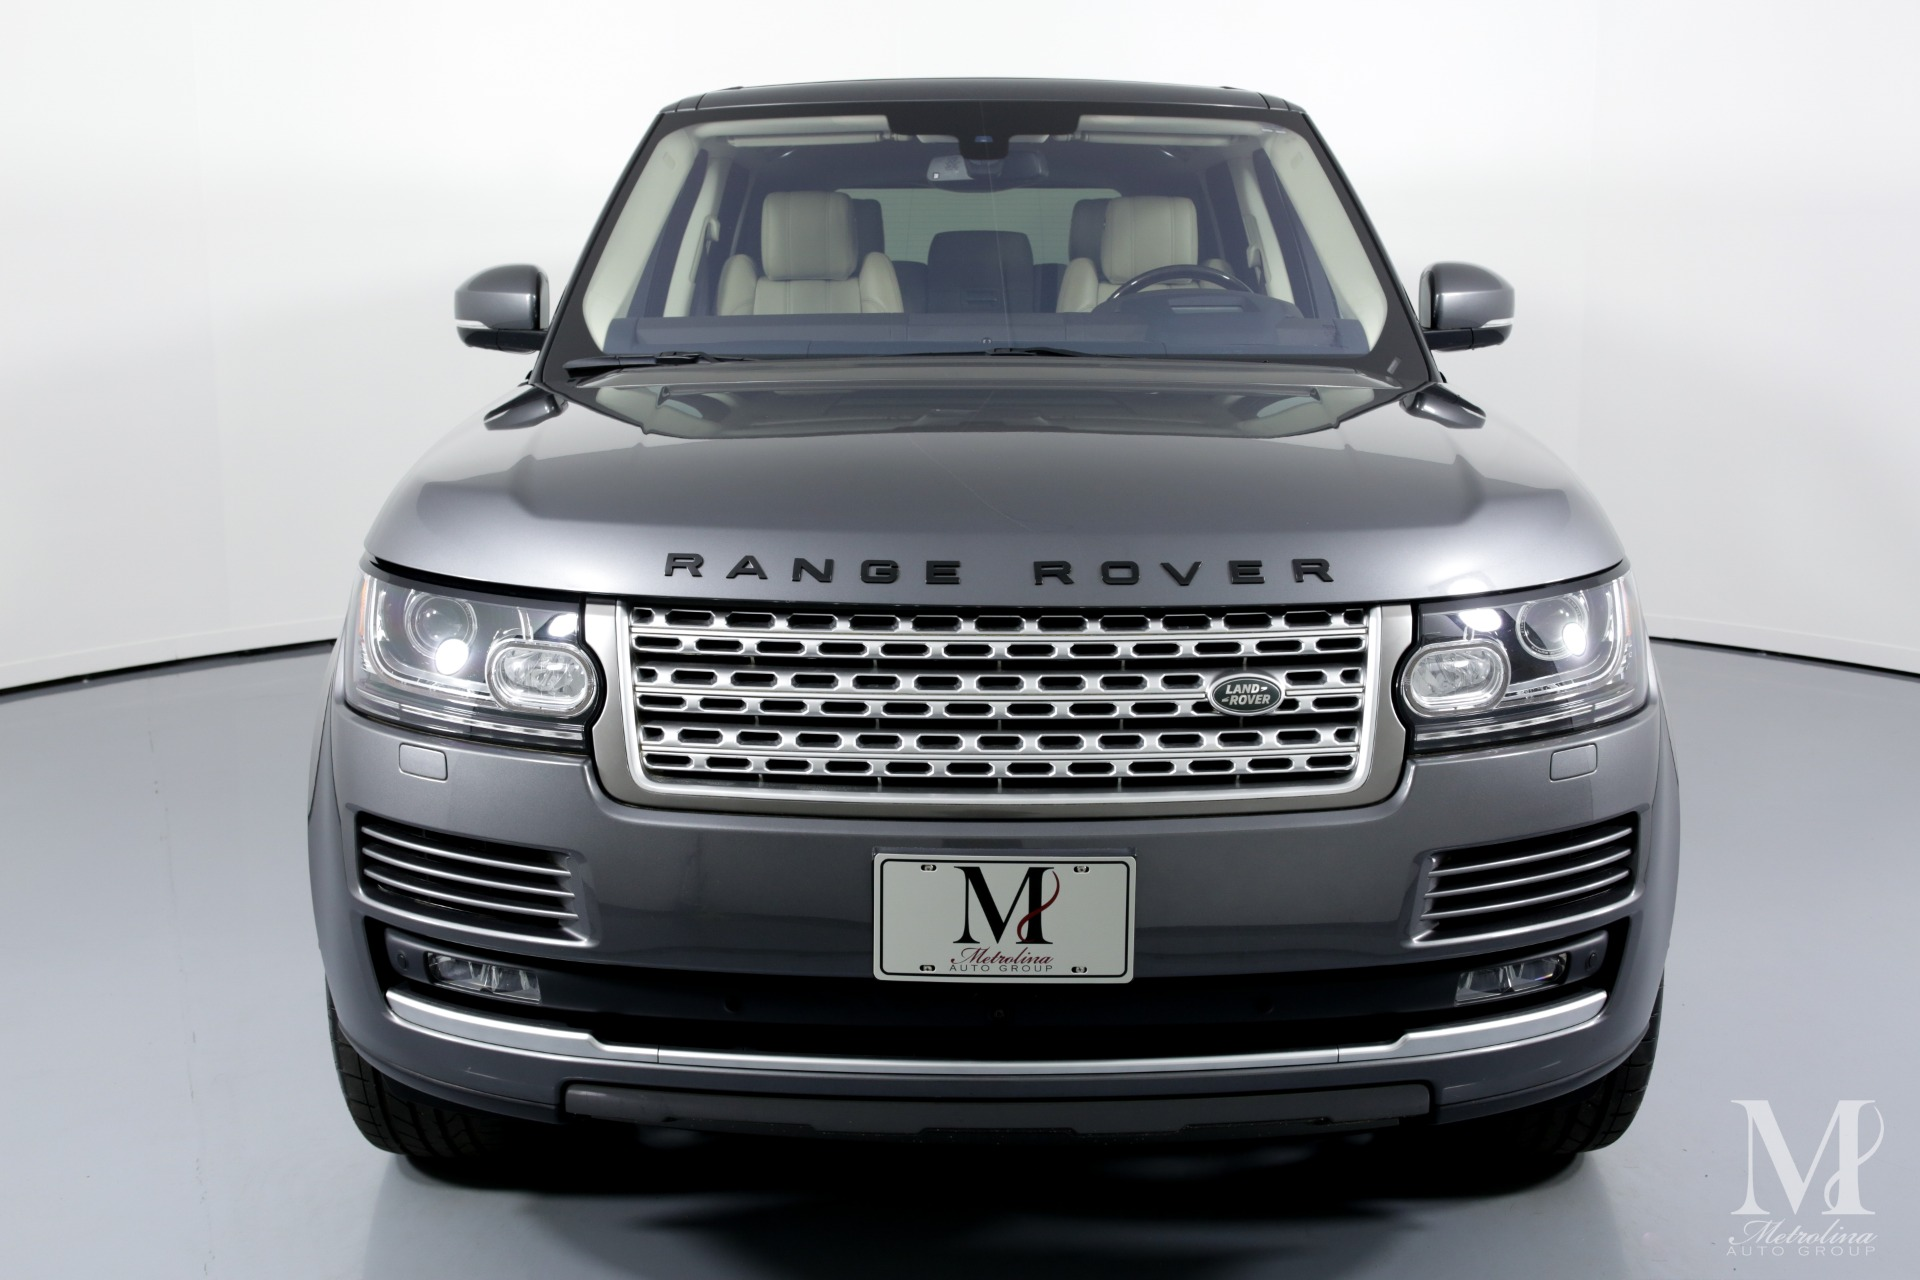 Used 2016 Land Rover Range Rover HSE AWD 4dr SUV for sale Sold at Metrolina Auto Group in Charlotte NC 28217 - 3